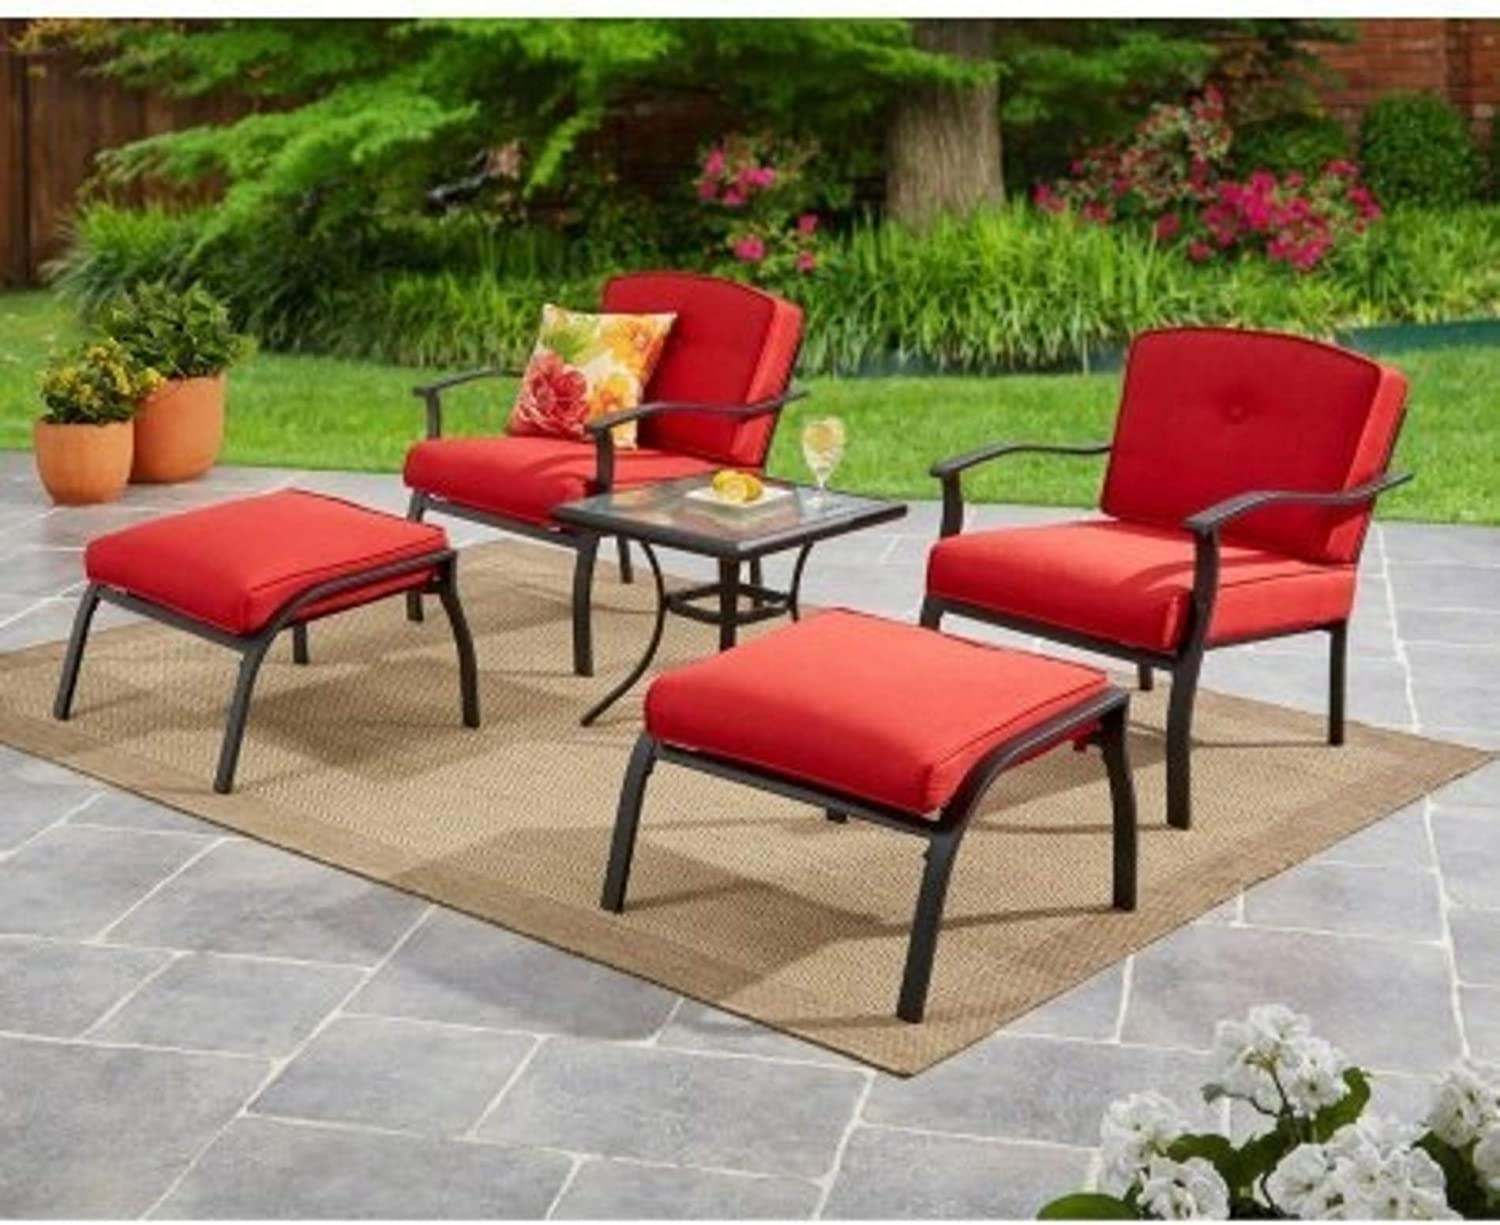 Mainstays Belden Park 5-Piece Leisure Set Red